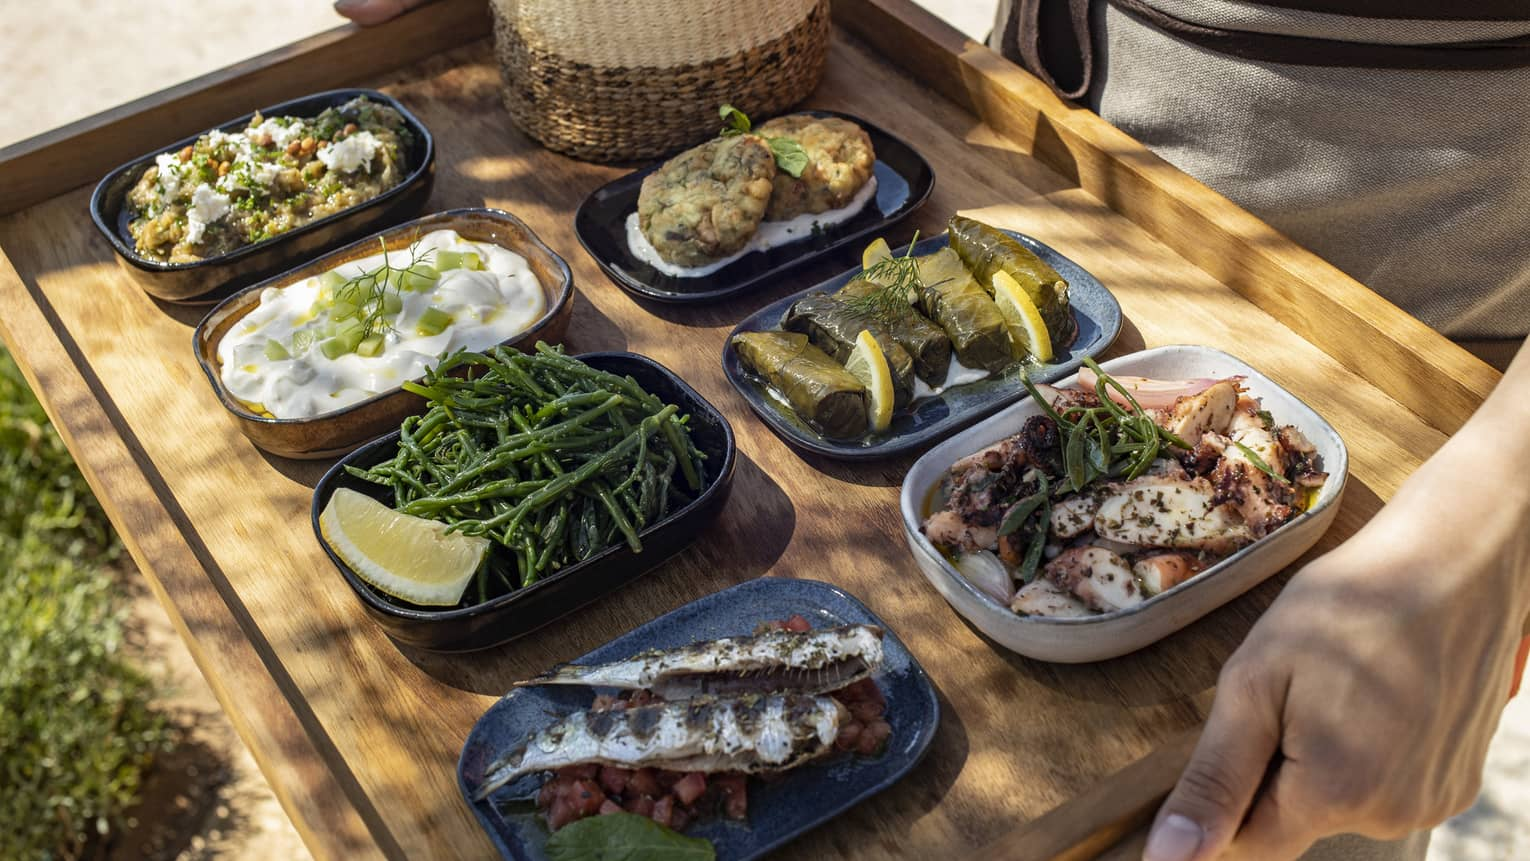 Seven shareable Greek dishes carried on wooden tray outdoors